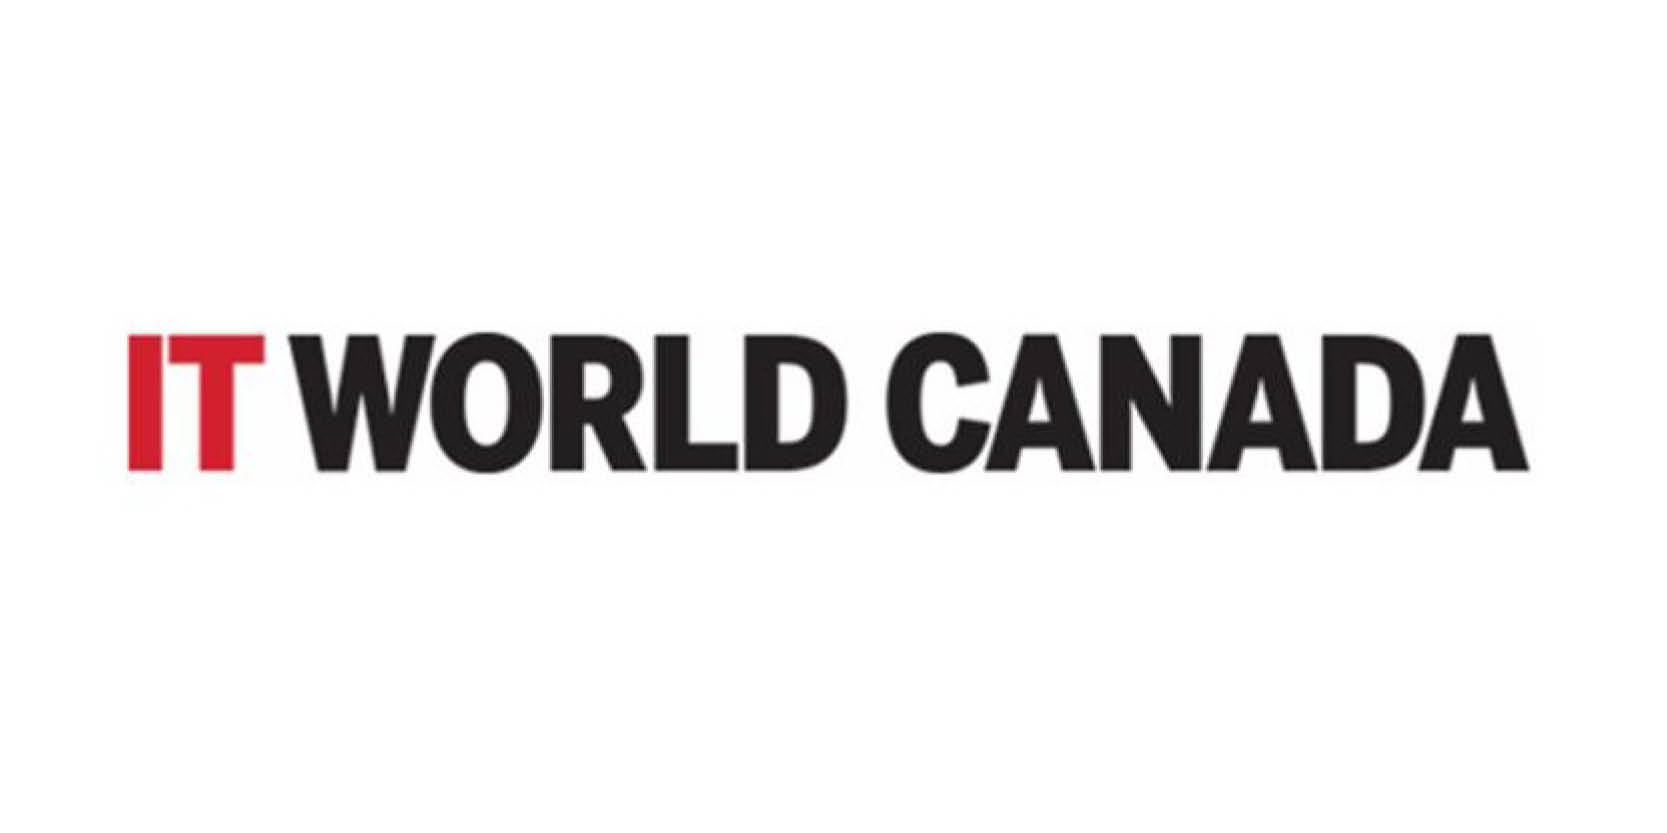 IT World Canada: Keep an eye on social media for advanced cyber-attack warnings